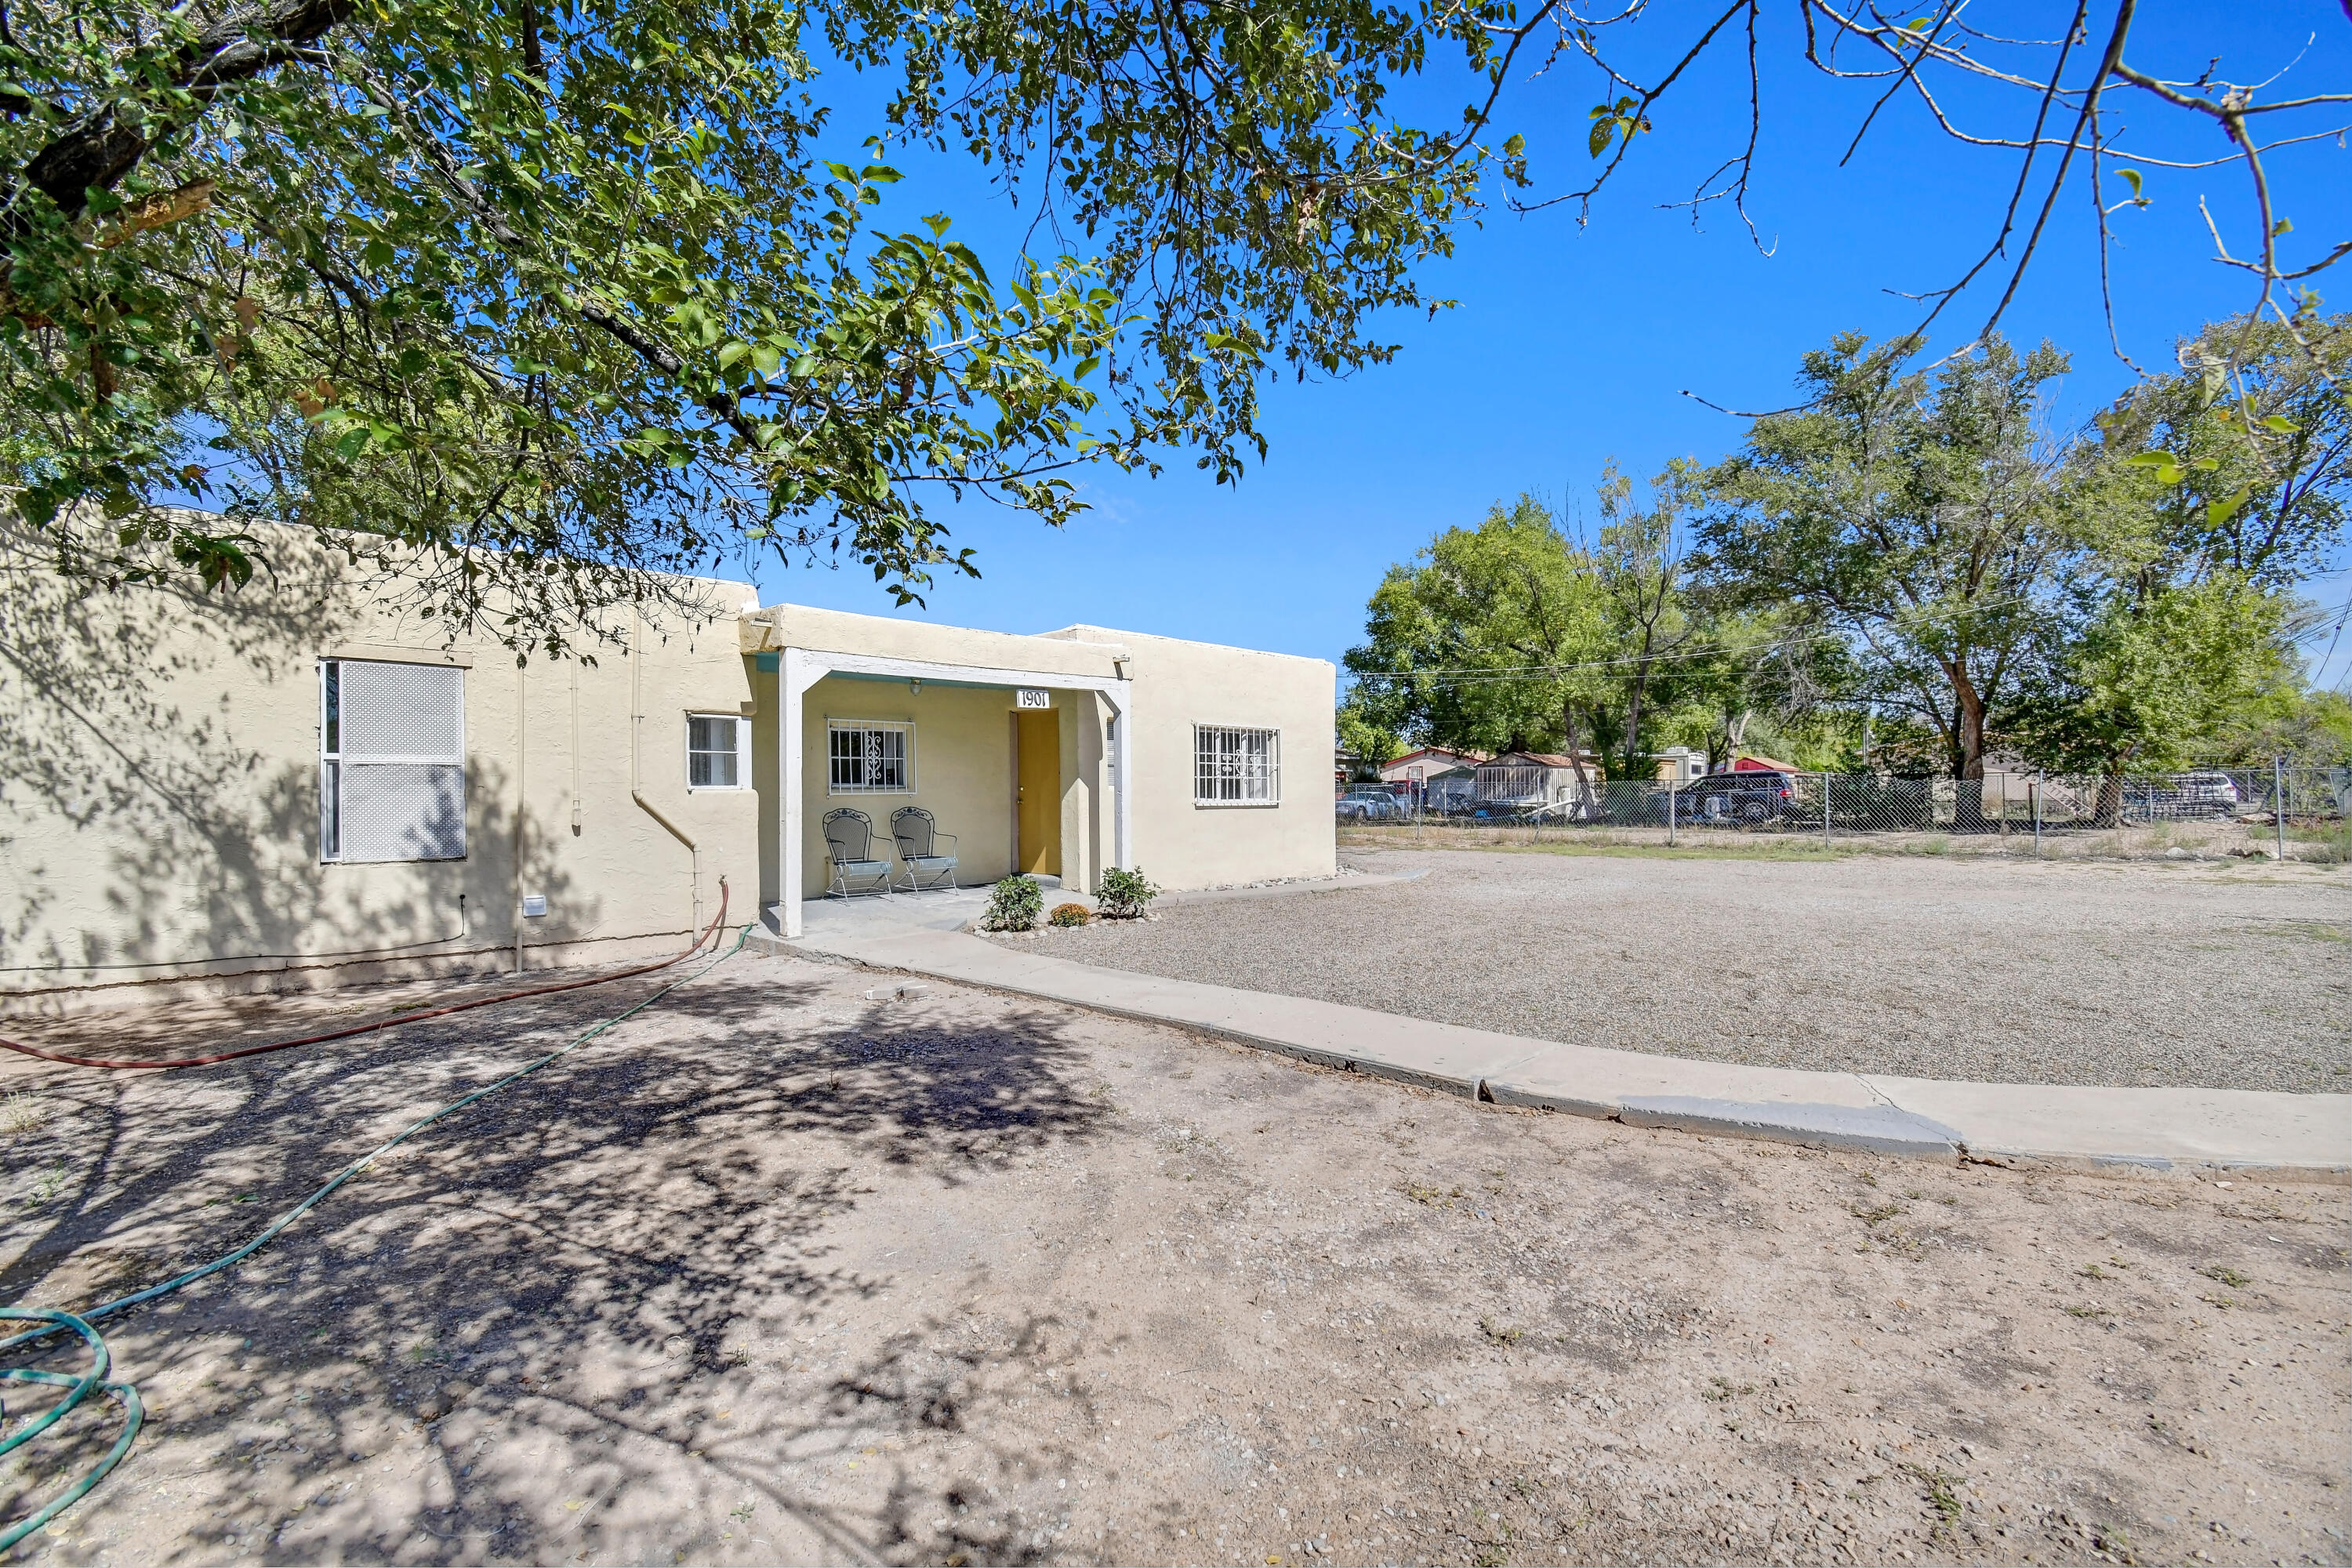 Very nice cozy home for the first time home owner, someone right sizing or an investment home. New flooring, fresh paint, on a quiet well established neighborhood sitting on .25 of an acre. Backyard access fenced yard. Bring your boats, campers, trucks. Lots of room for your possessions.